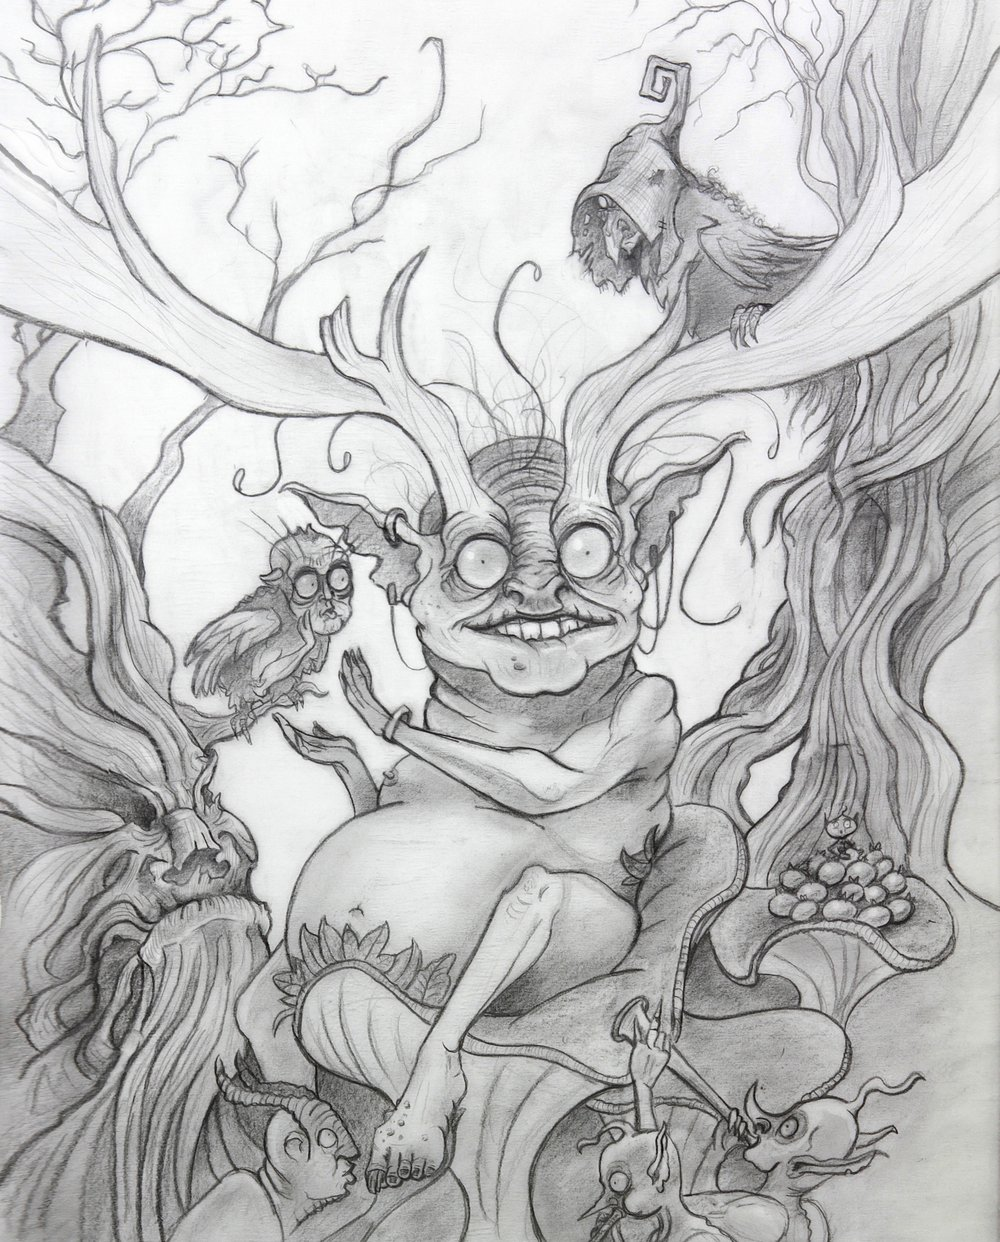 Original drawing for the Faerie King